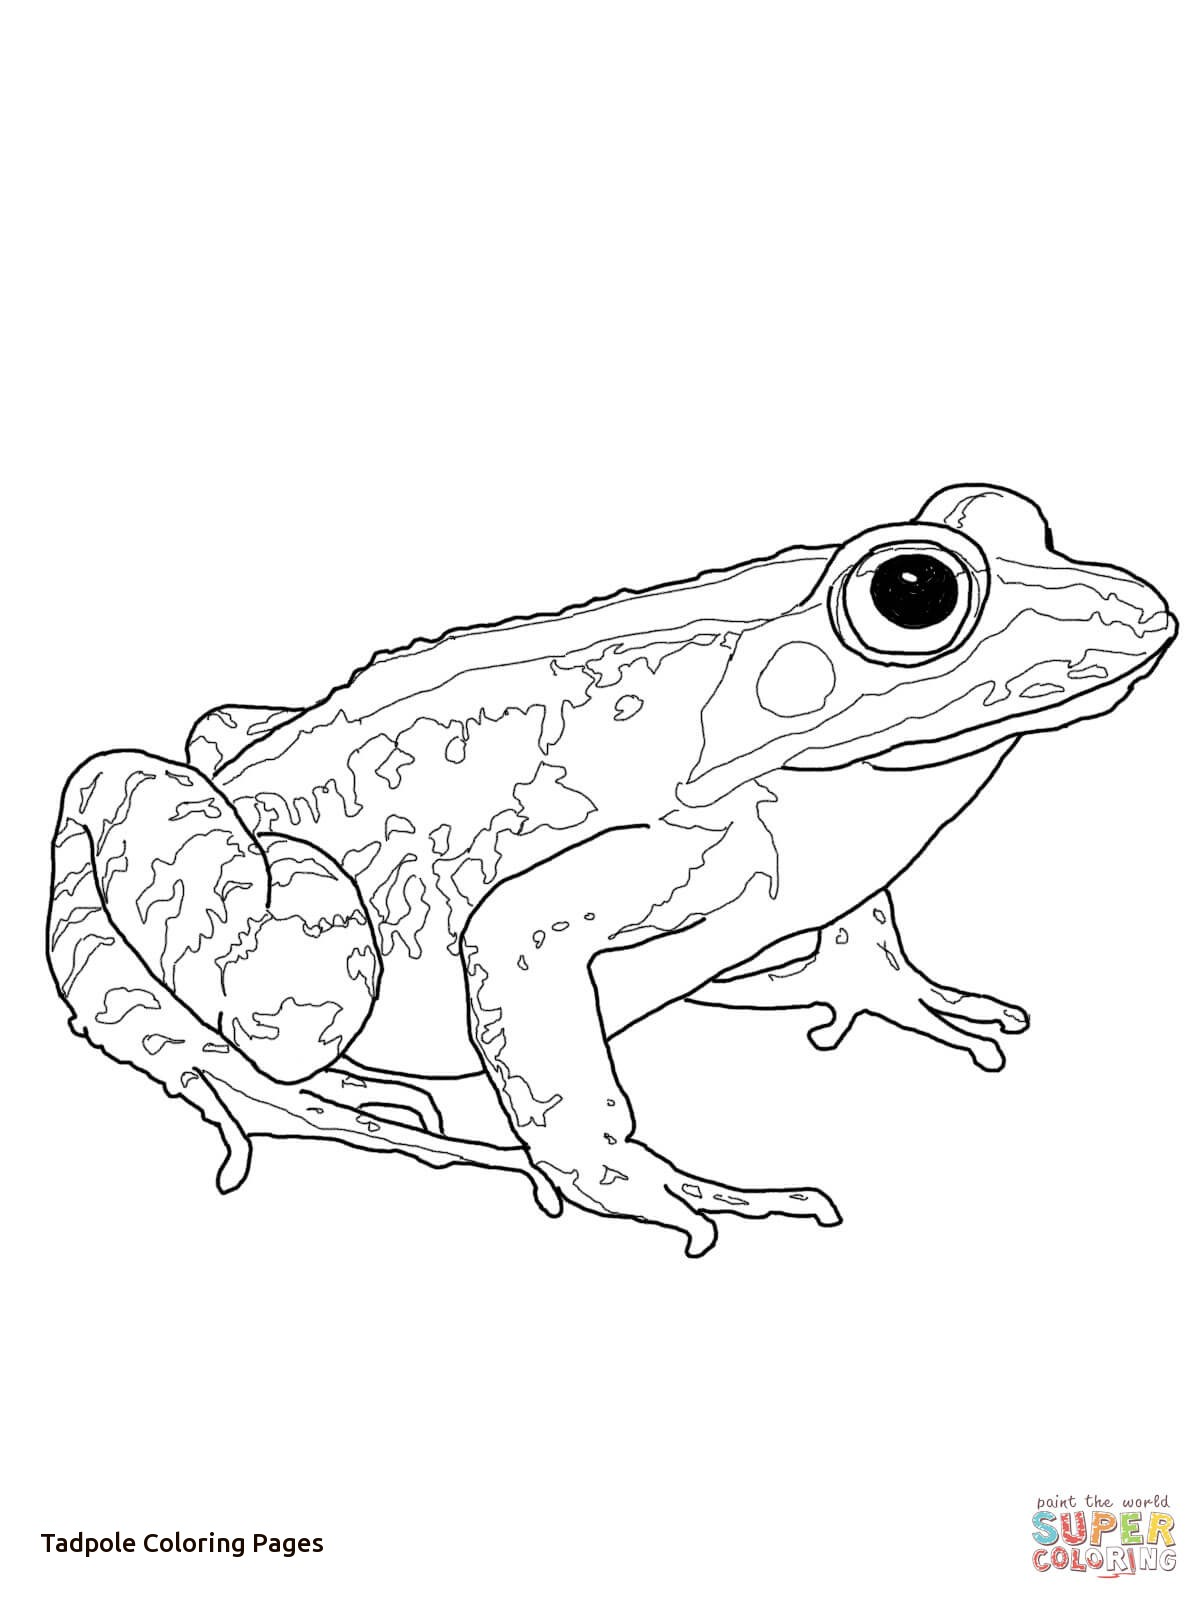 The Best Free Tadpole Coloring Page Images Download From 61 Free